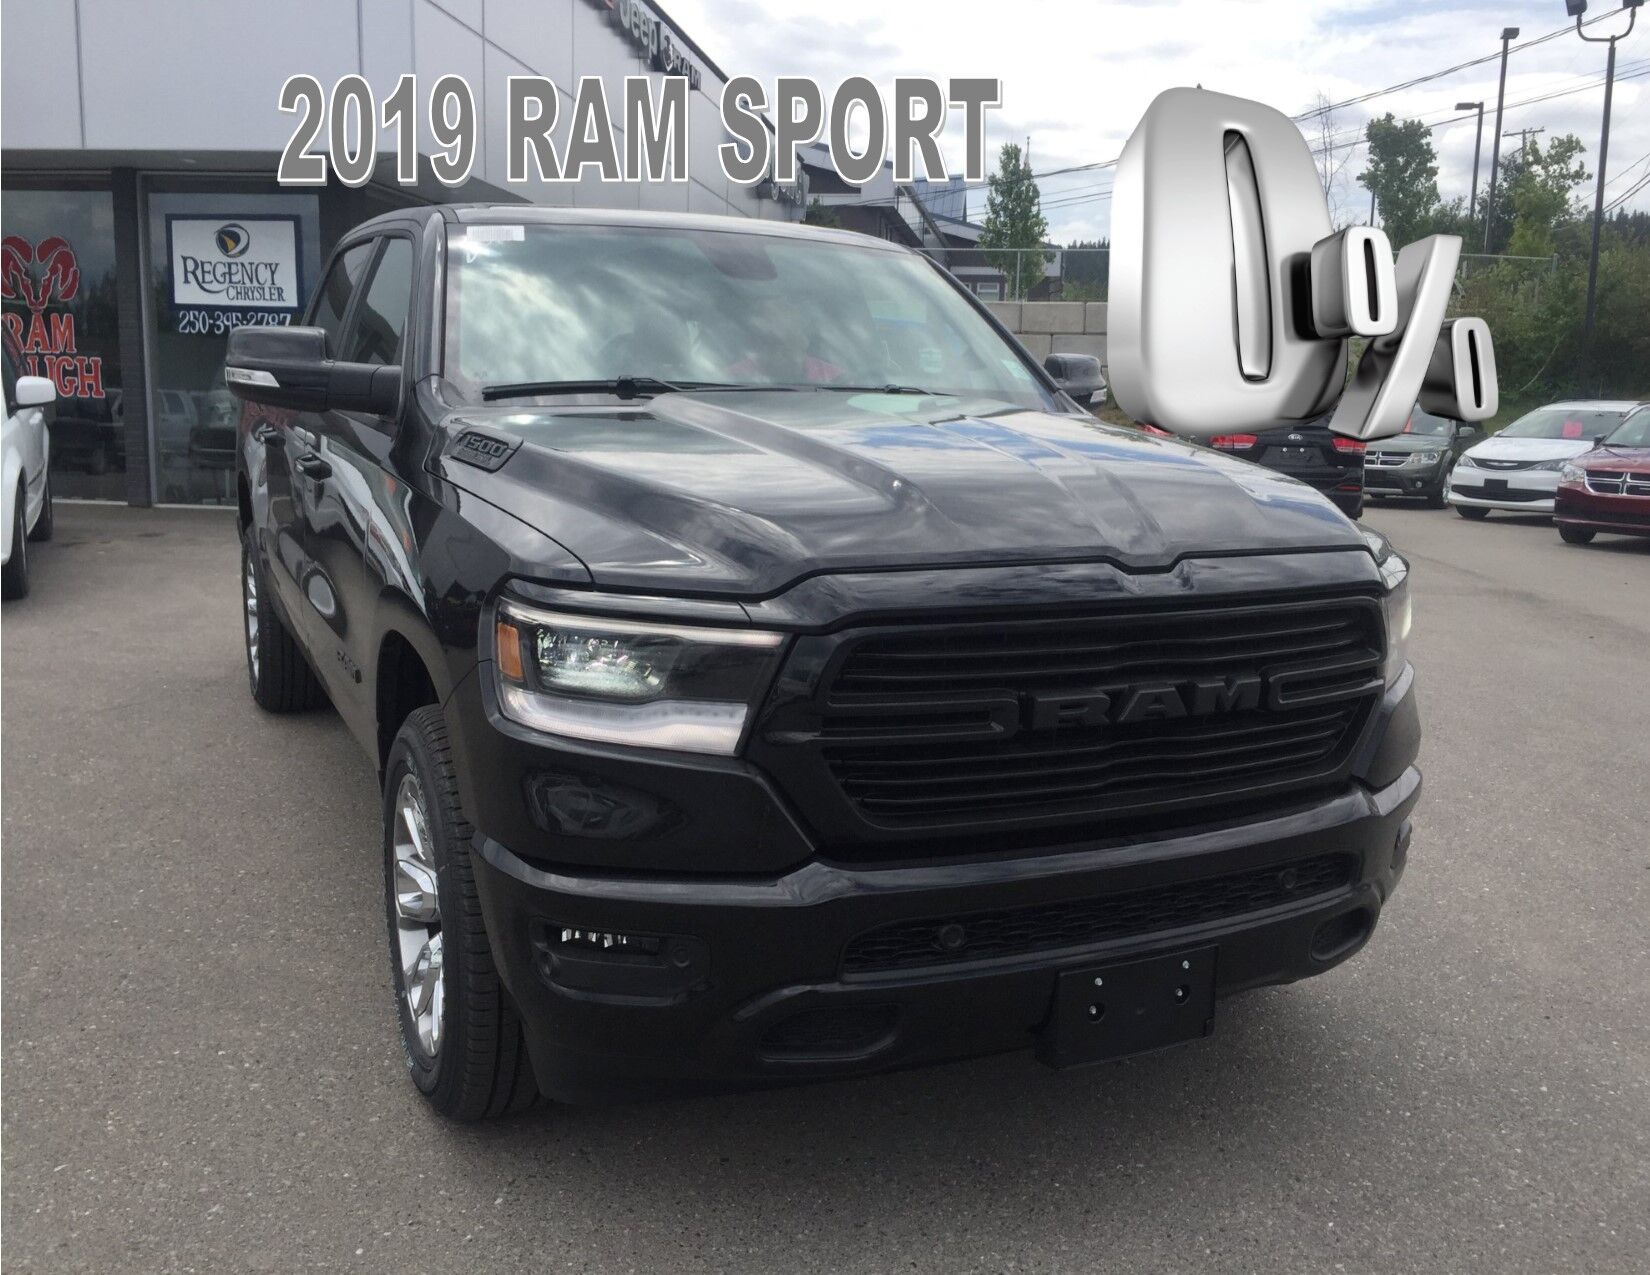 More 2019 Ram 1500 & 3500 arriving weekly